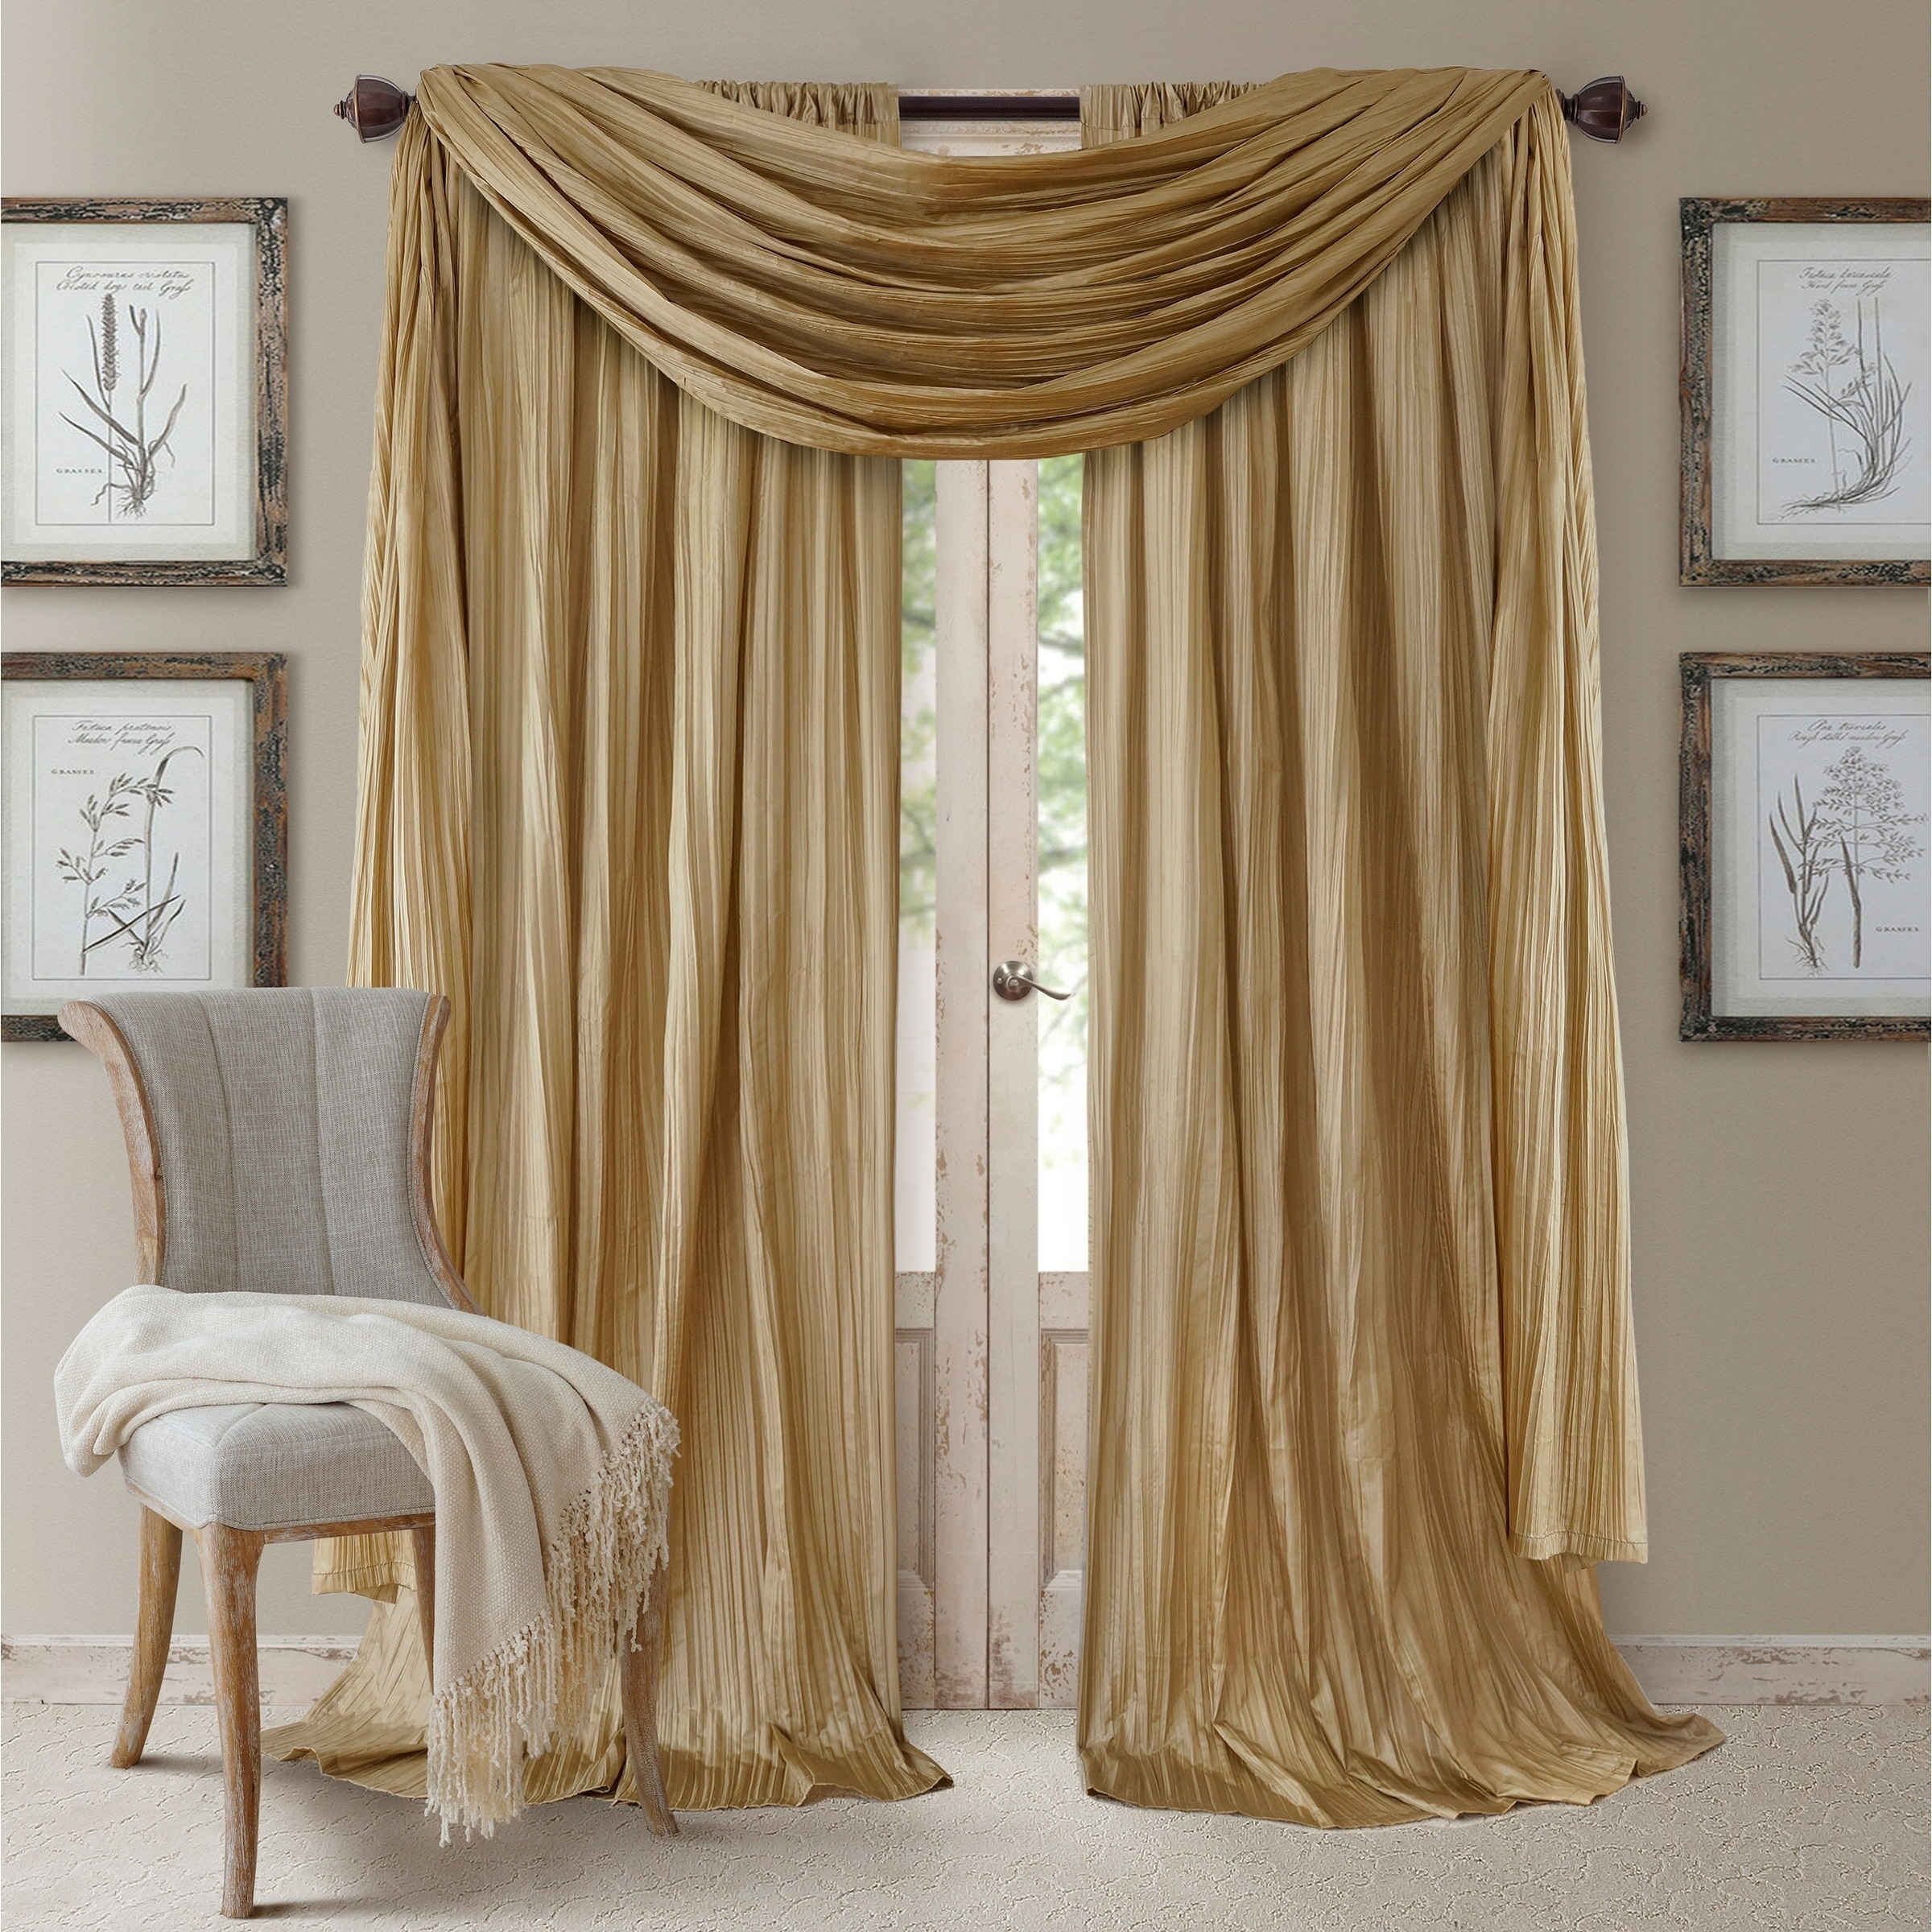 lush panel ombre curtains shipping overstock decor product ruffle panels home today free garden curtain